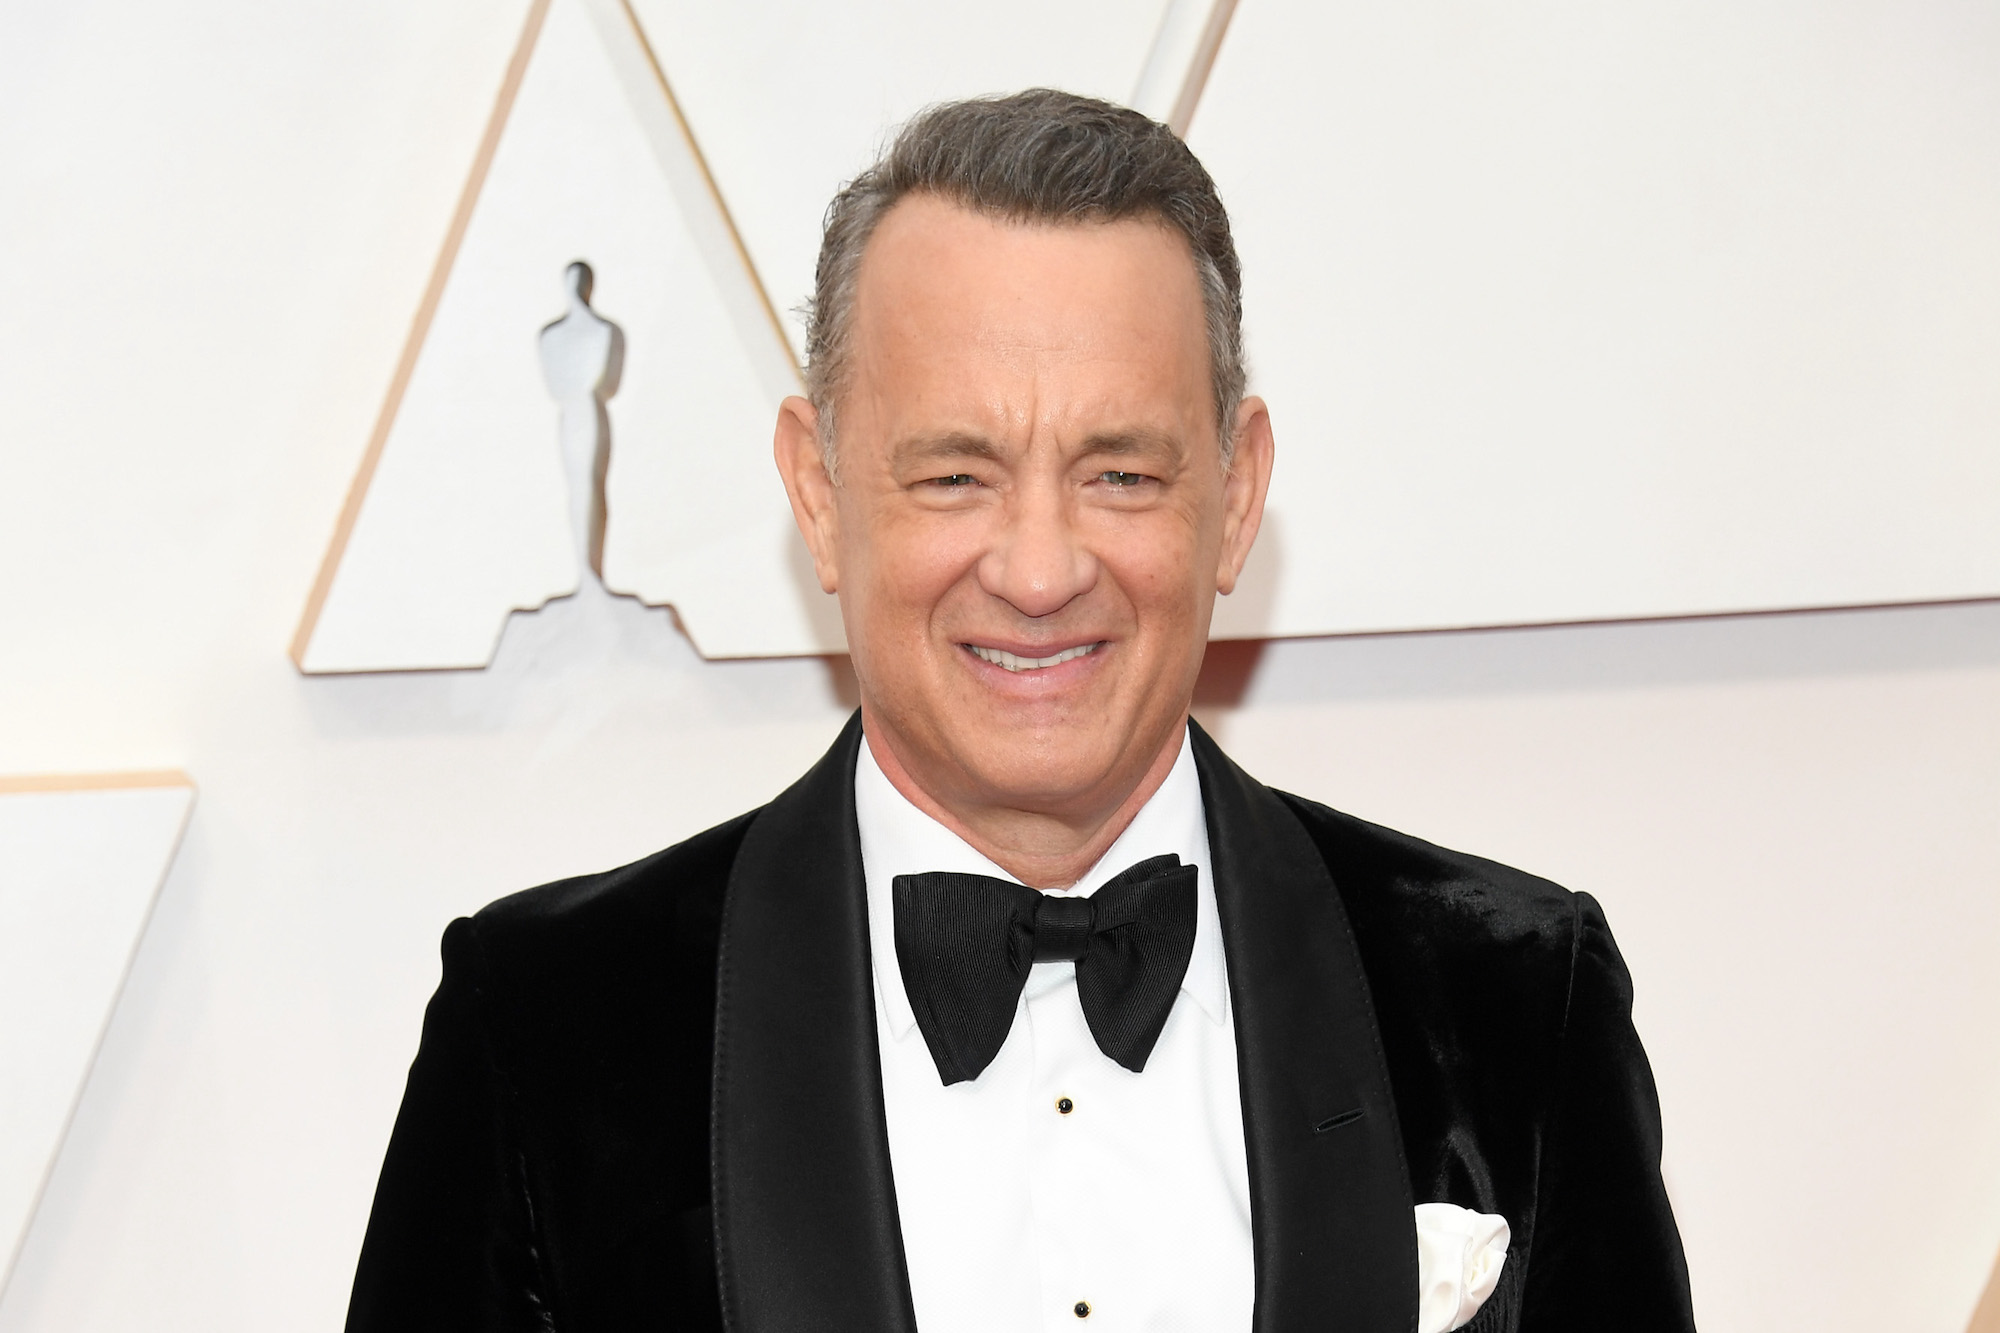 Tom Hanks To Host Presidential Inauguration TV Special; Lady Gaga, Bruce Springsteen Among Performers